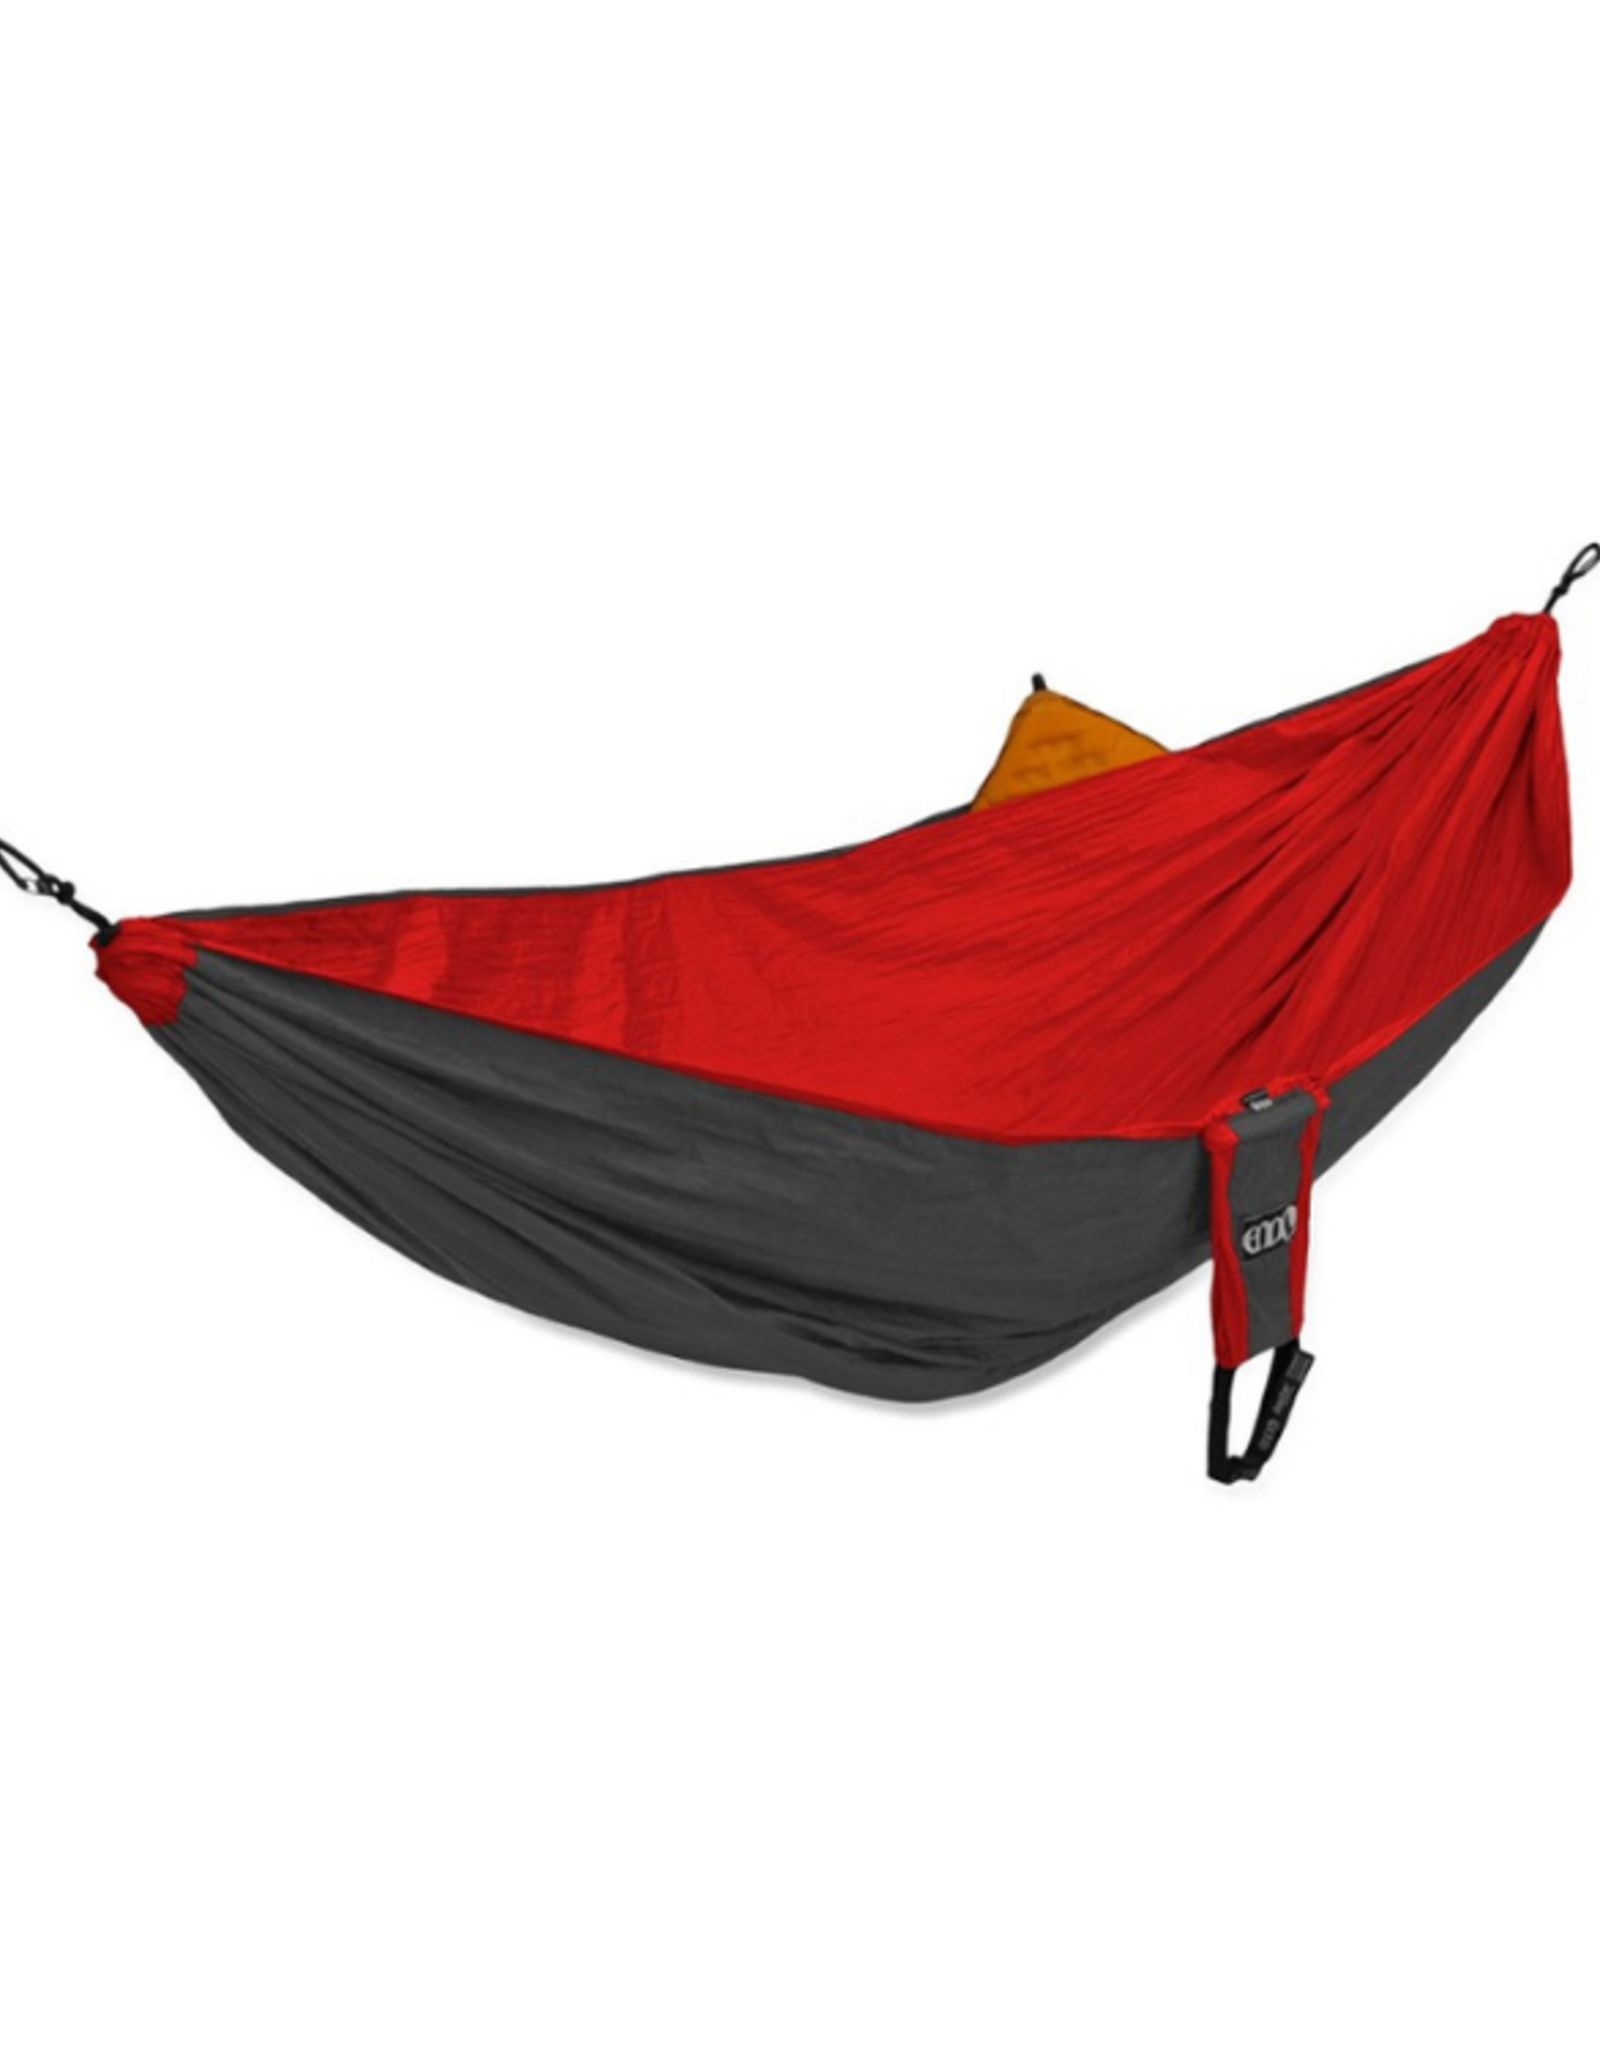 Eagles Nest Outfitters ENO Reactor Hammock Red/Charcoal